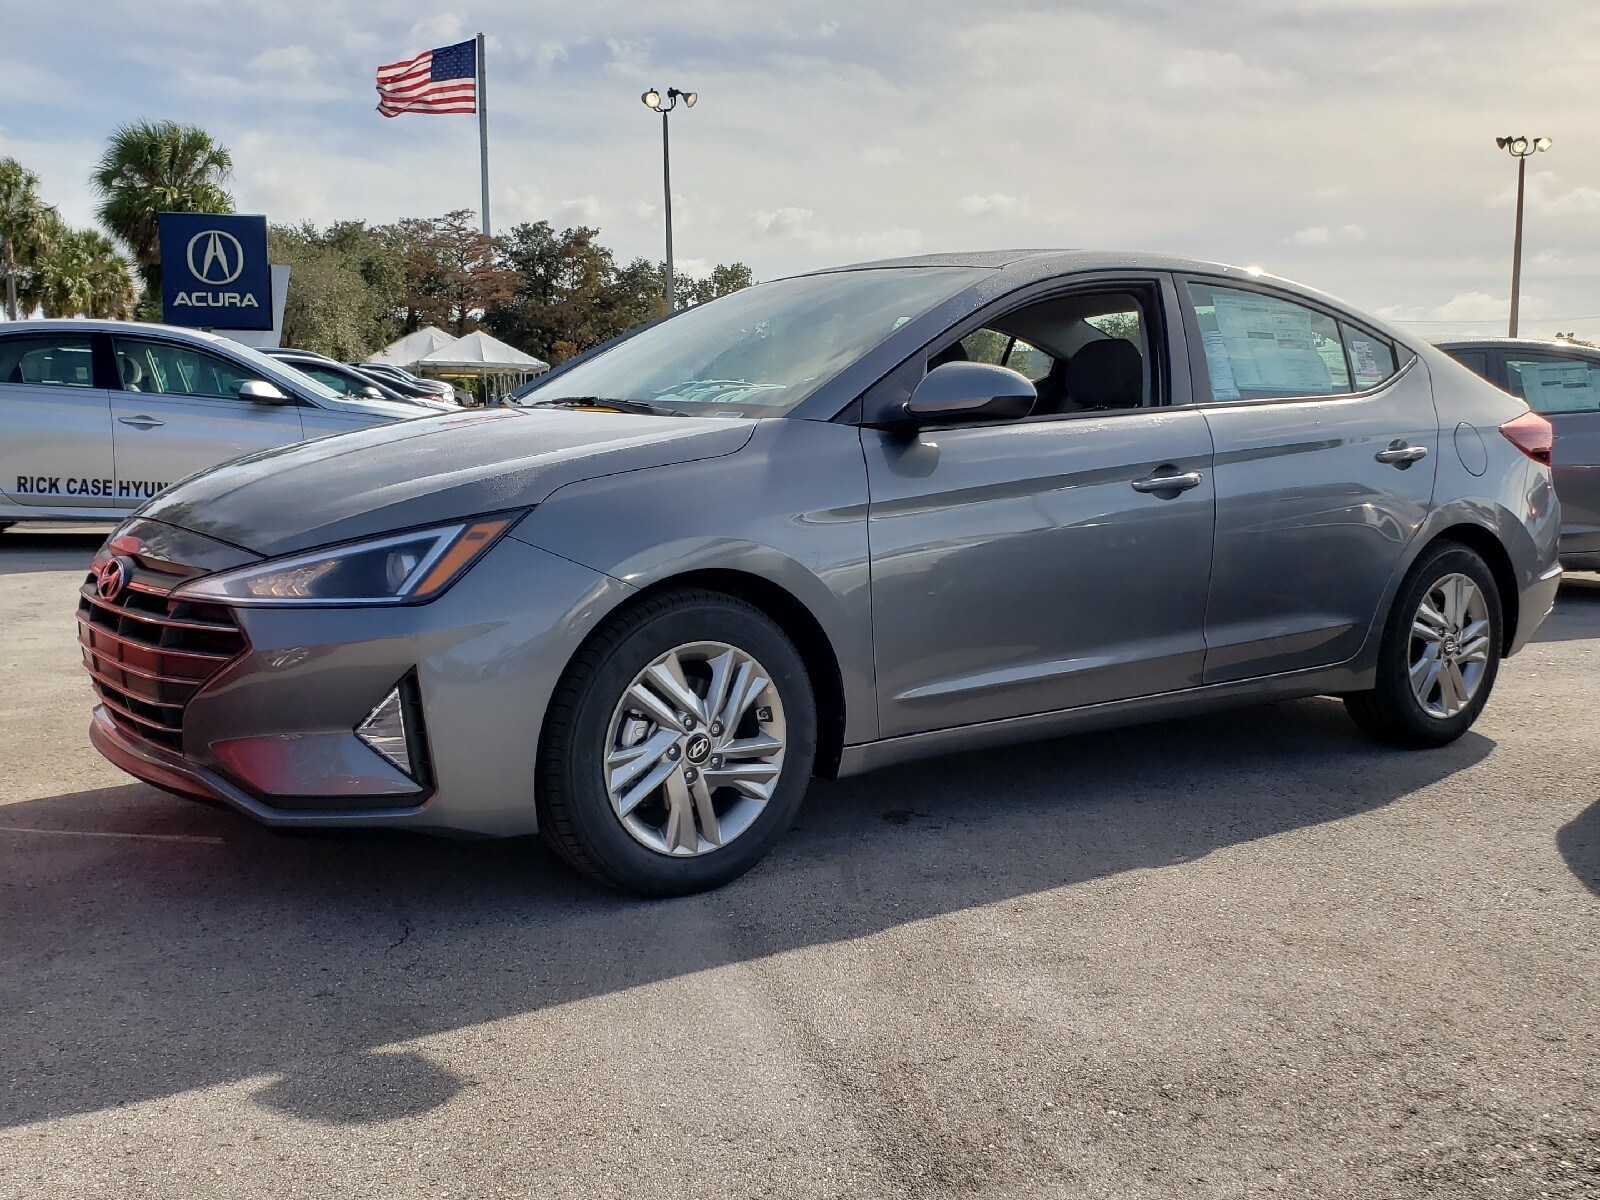 Acura Of Pembroke Pines Fresh 2019 New Hyundai Elantra Sel Sedan for Sale Ft Lauderdale area